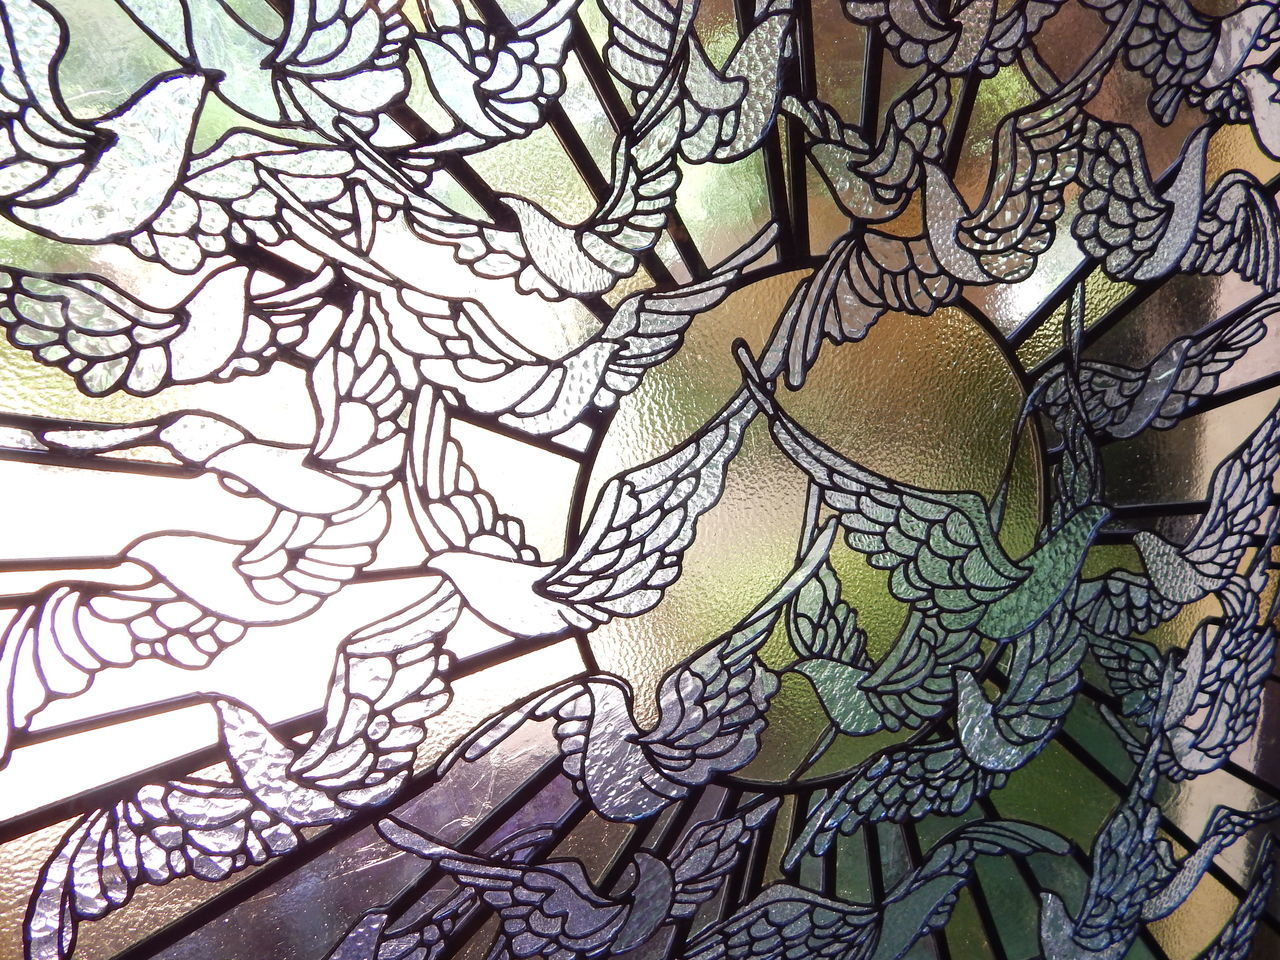 Stained Glass Window Stained Glass PreciousMoments Chapel Missouri Birds Sunshine Architecture Art ArtWork Close-up No People Branch Nature Outdoors Day